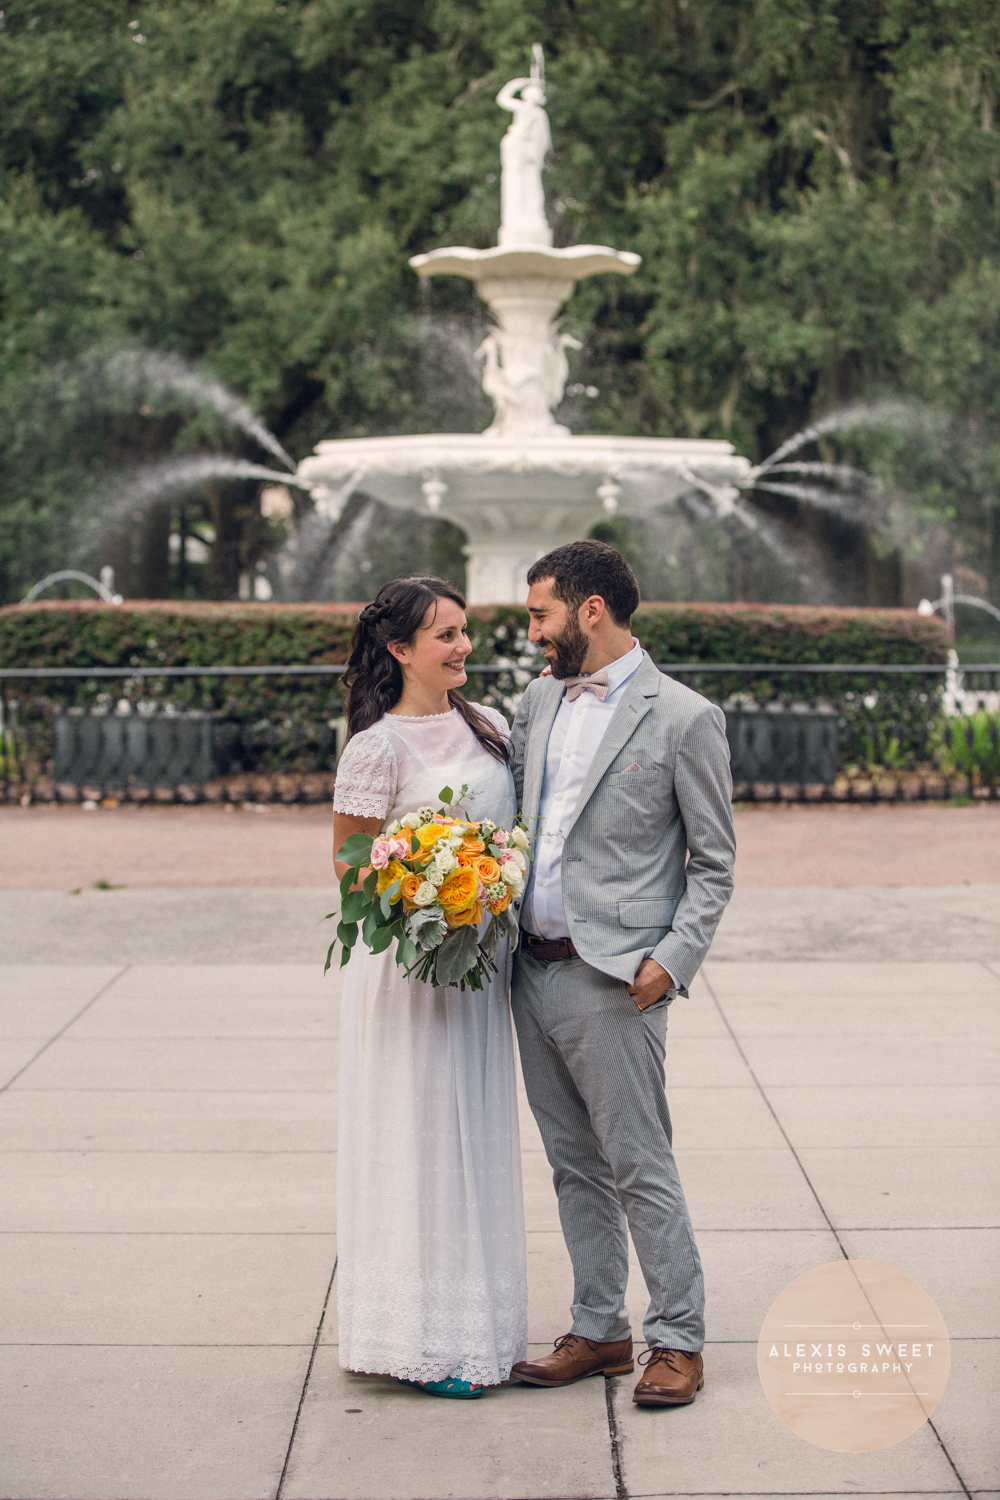 alexis-sweet-photography-ivory-and-beau-bridal-boutique-monterey-square-wedding-savannah-wedding-planner-savannah-weddings-historic-savannah-wedding-vintage-wedding-peach-wedding-southern-vintage-wedding-savannah-bridal-boutique-14.jpg